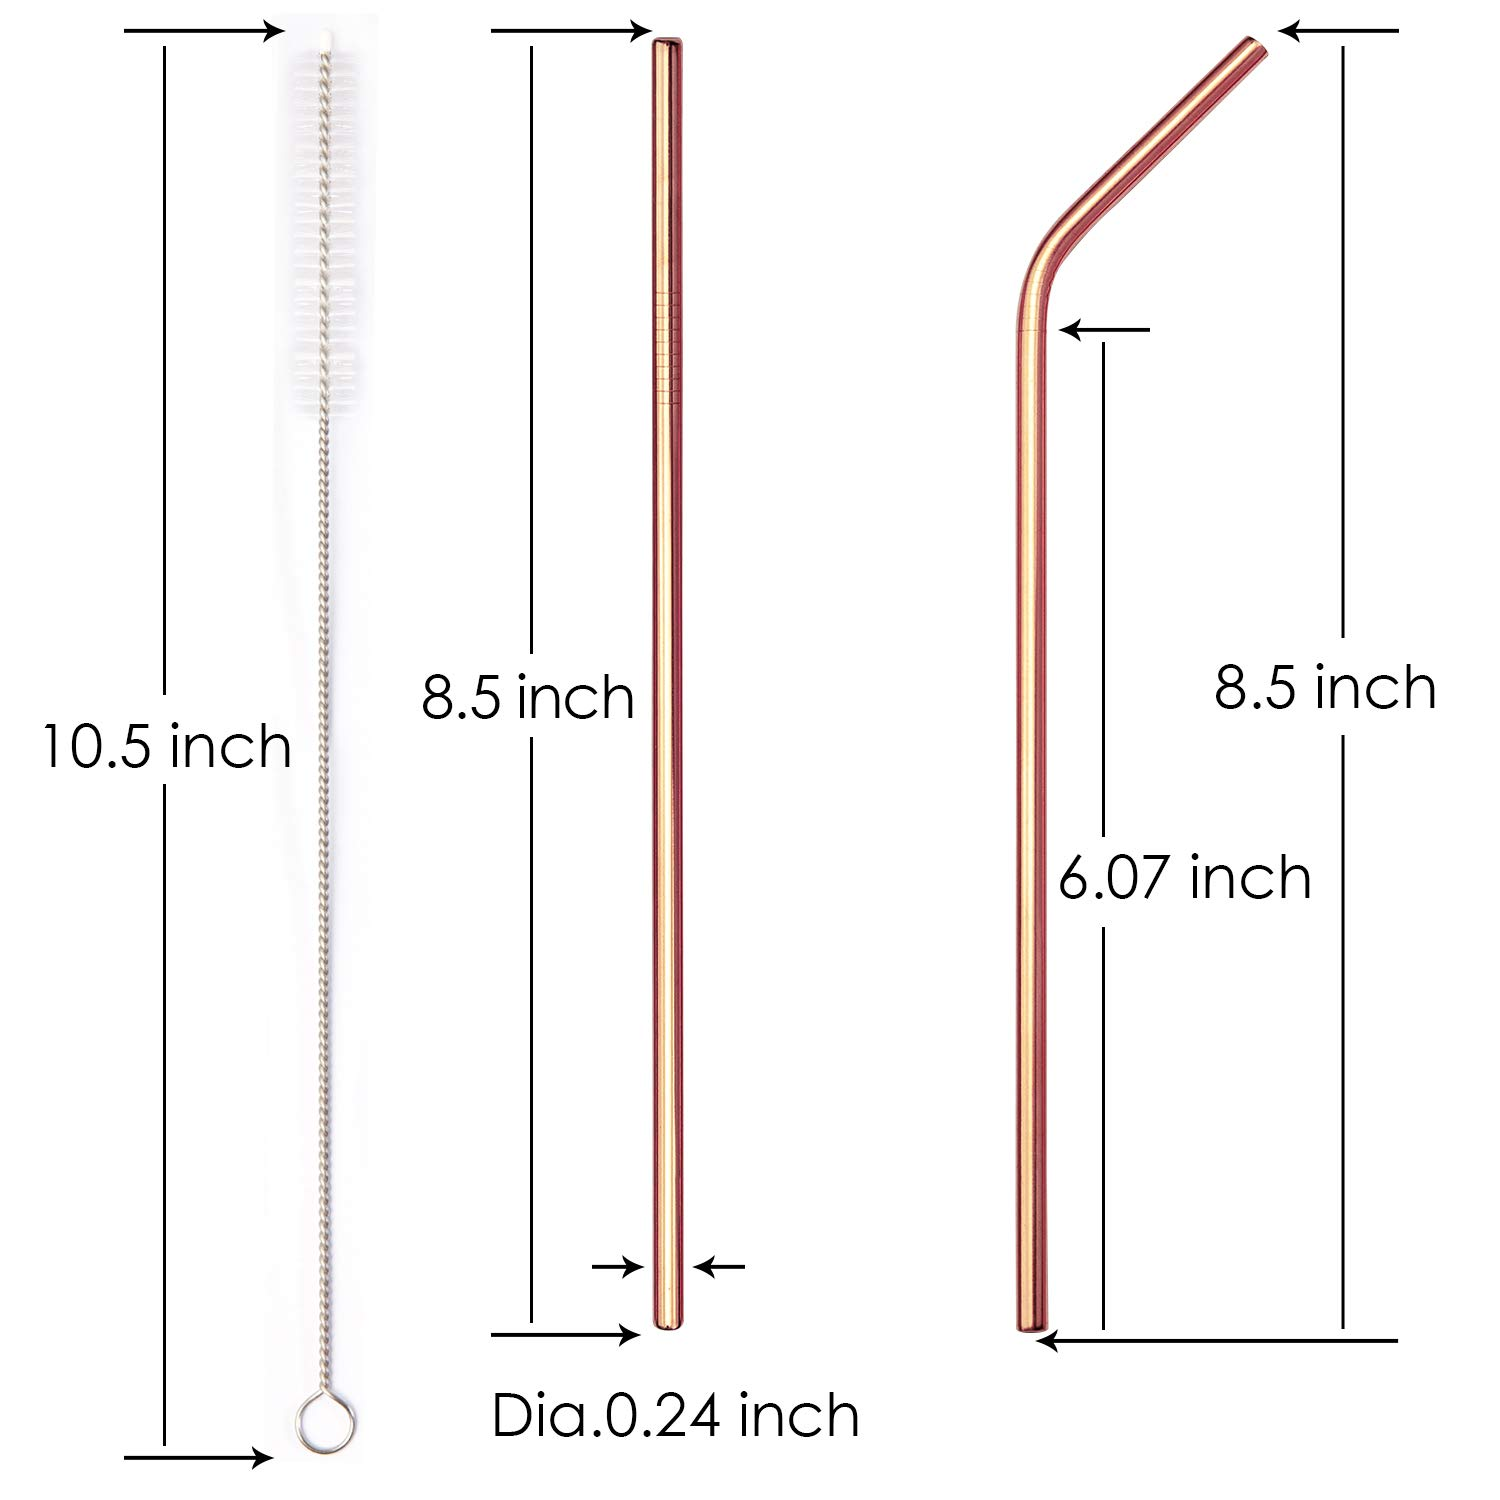 4 Straight + 4 Bent + 2 Brushes YIHONG Set of 8 Stainless Steel Metal Straws 8.5 Reusable Drinking Straws for 20oz Tumblers 6mm Diameter Rose Gold